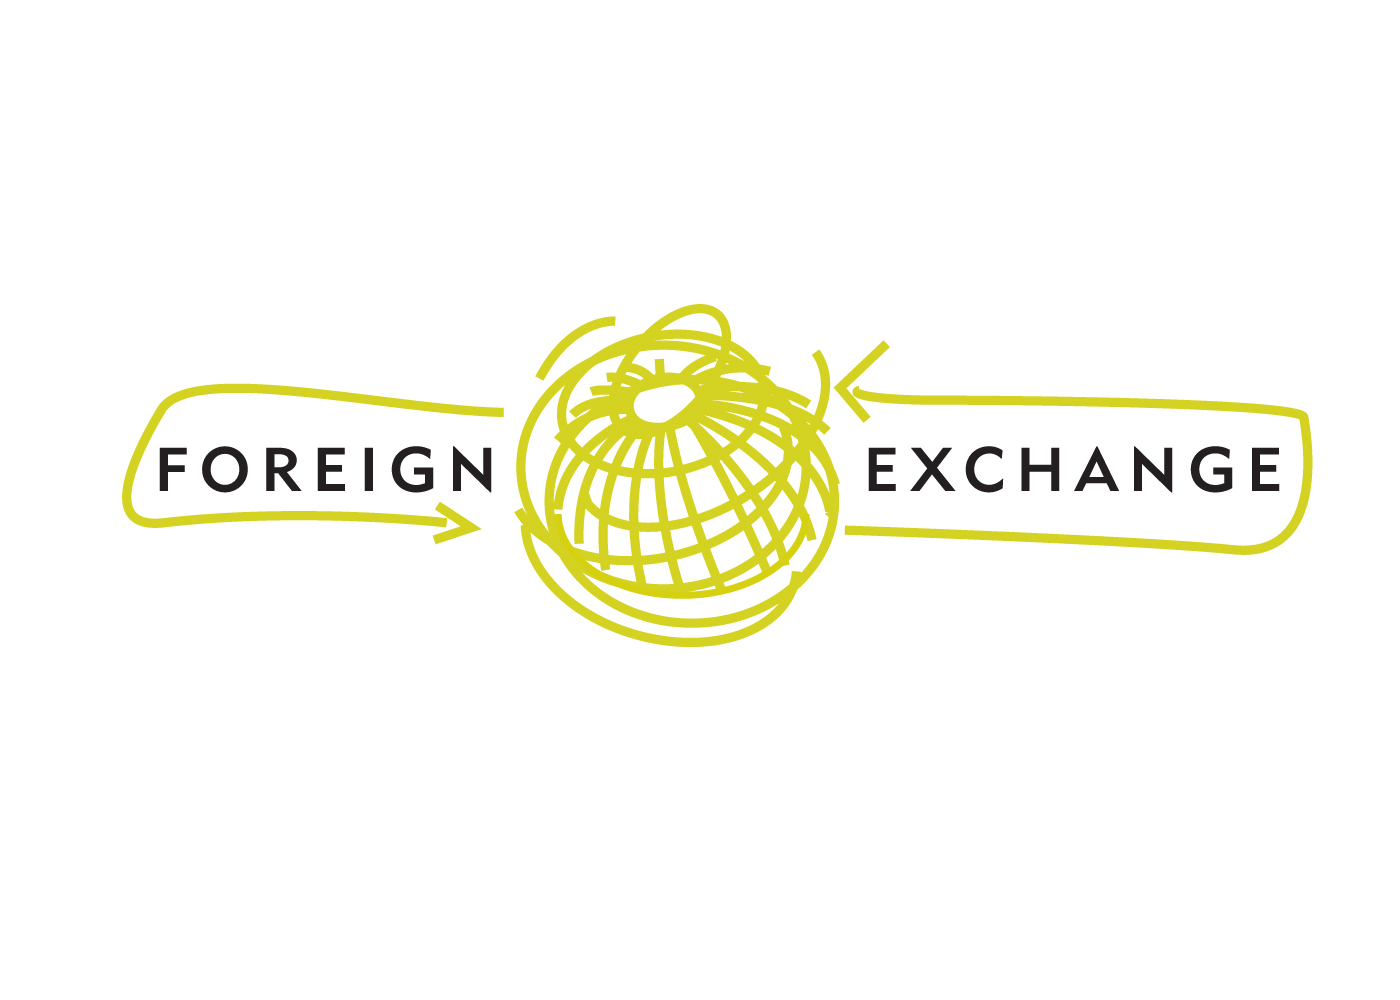 Foreign-Exch-1